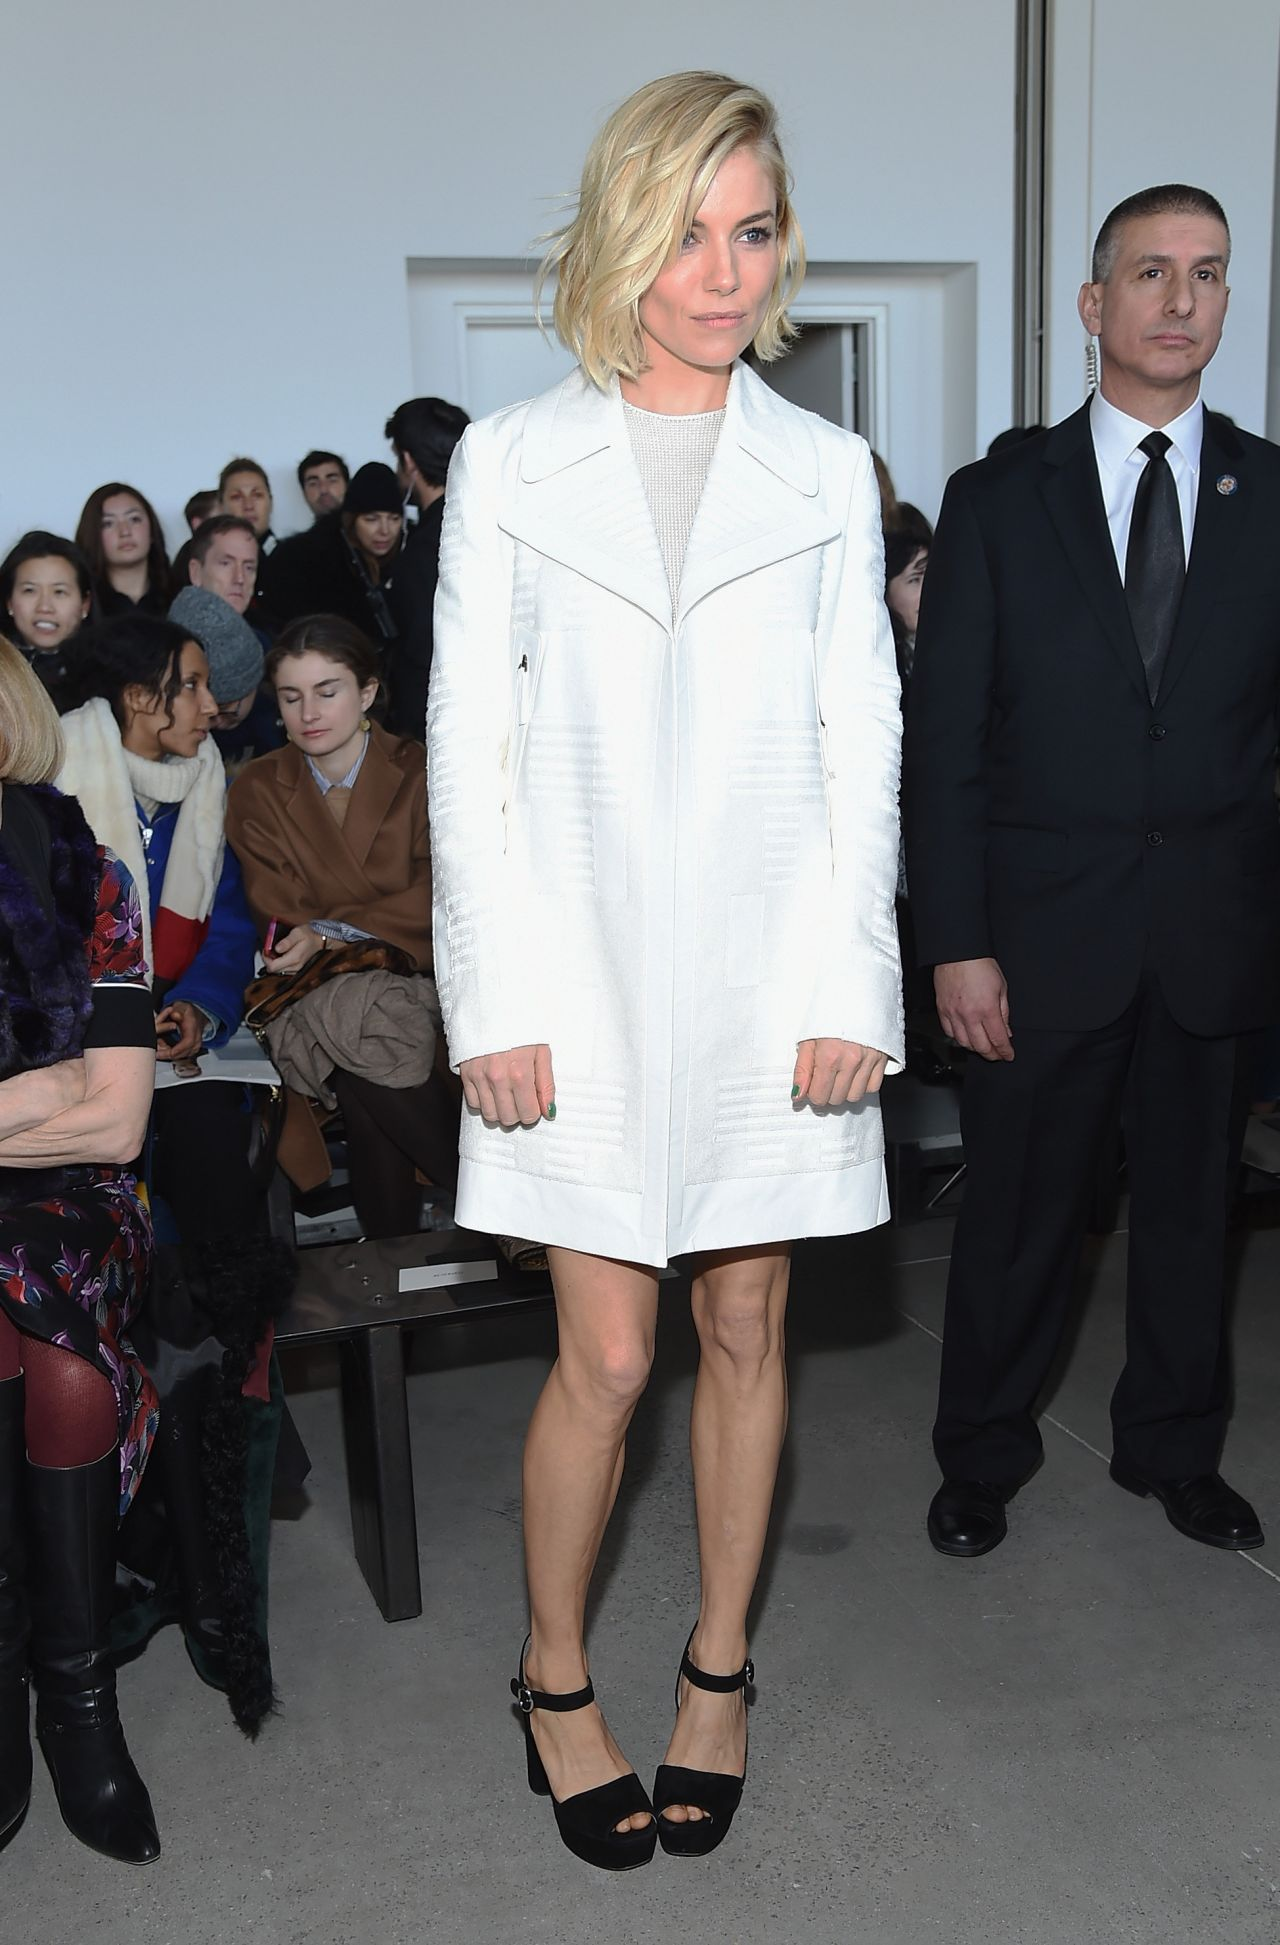 Sienna Miller - Calvin Klein Fashion Show in New York City, February 2015